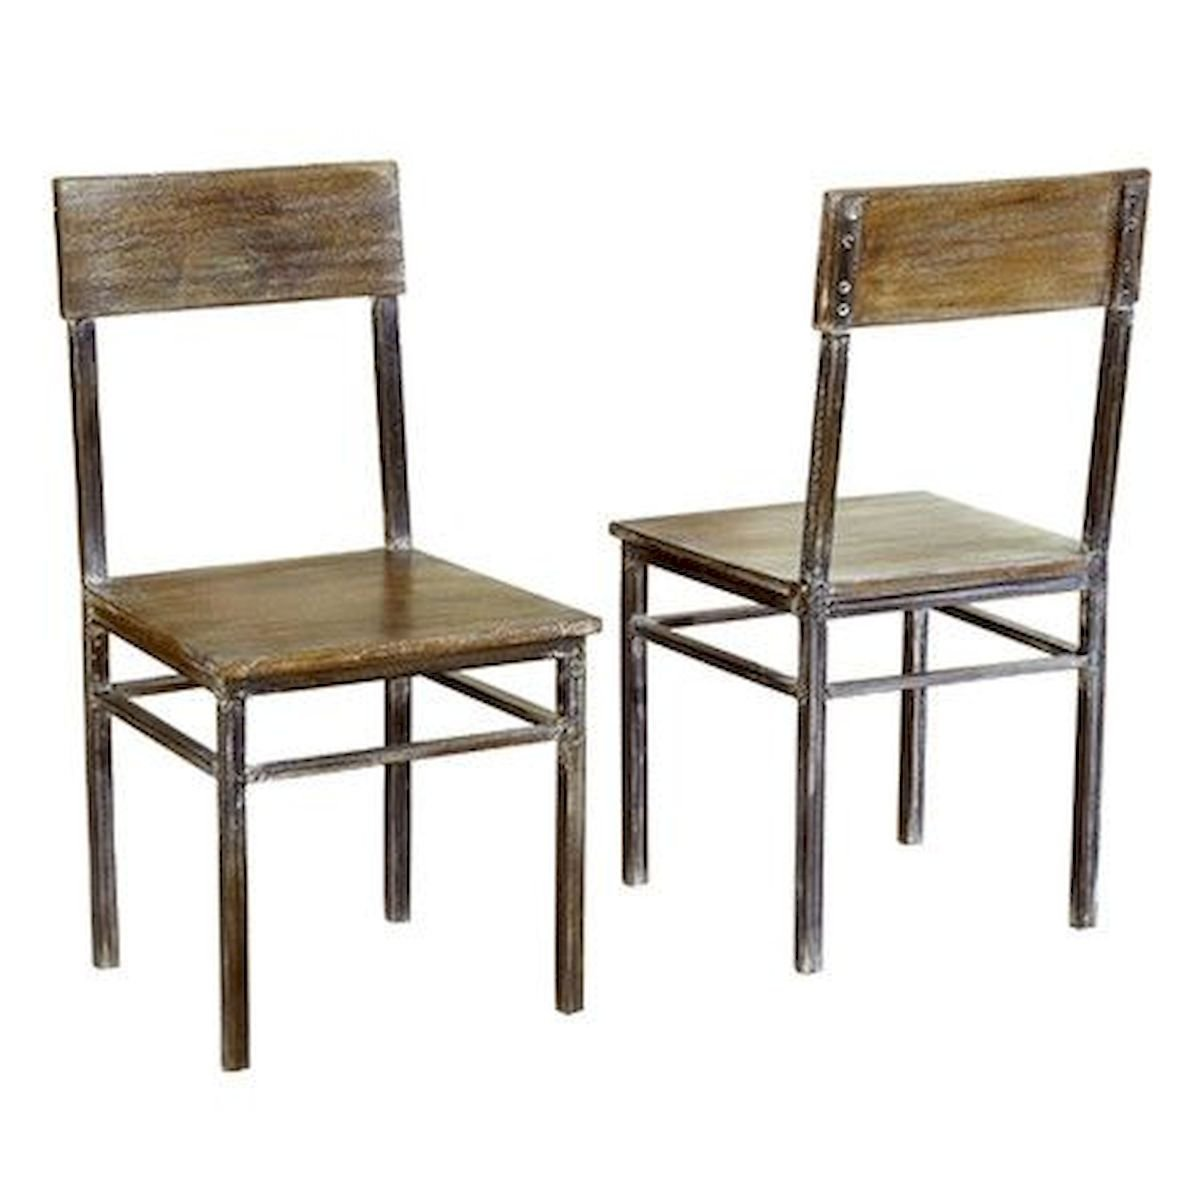 The Best Choice of Farmhouse Chairs (7)